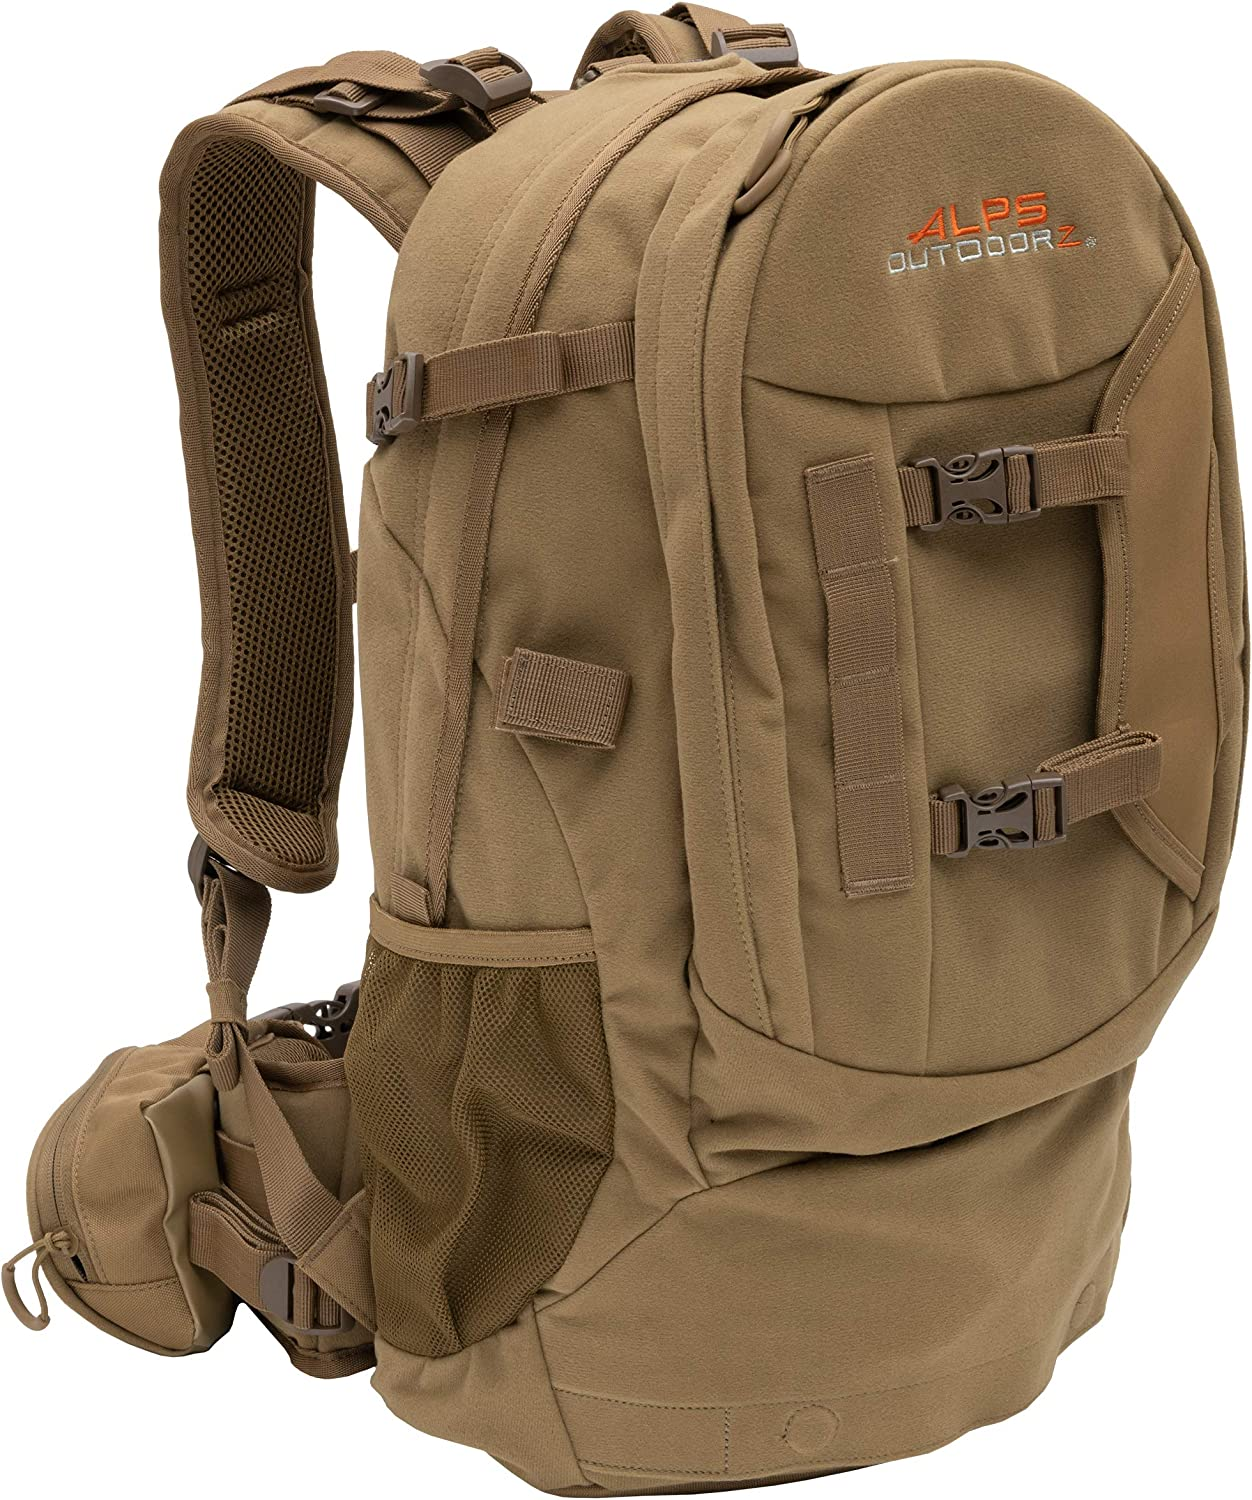 hunting backpack with rifle holder